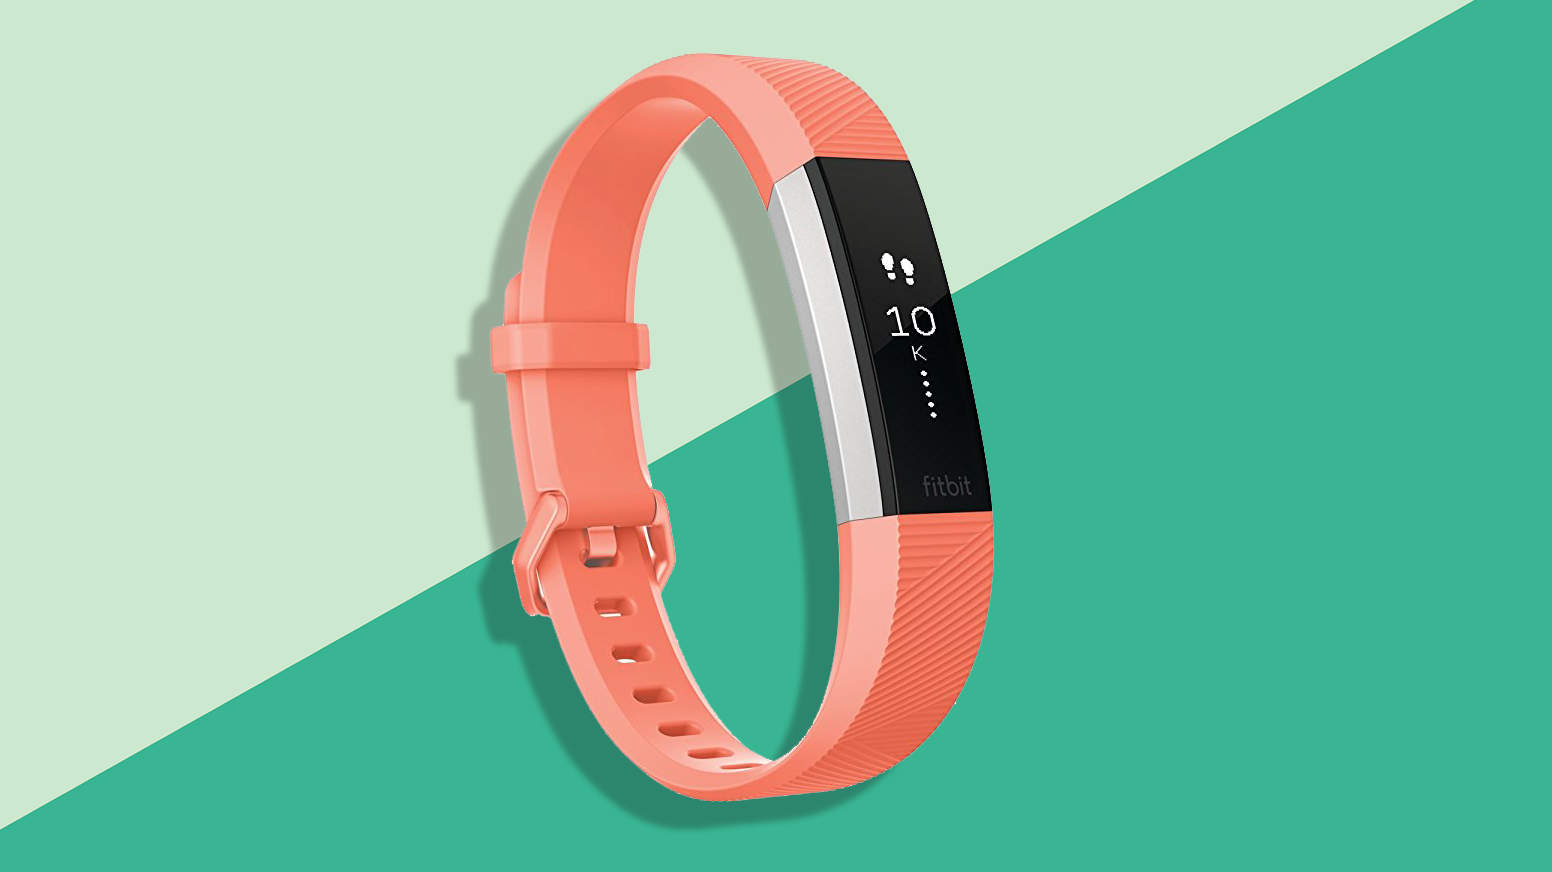 There's a Massive Sale on Fitbit Fitness Trackers Right Now on Amazon